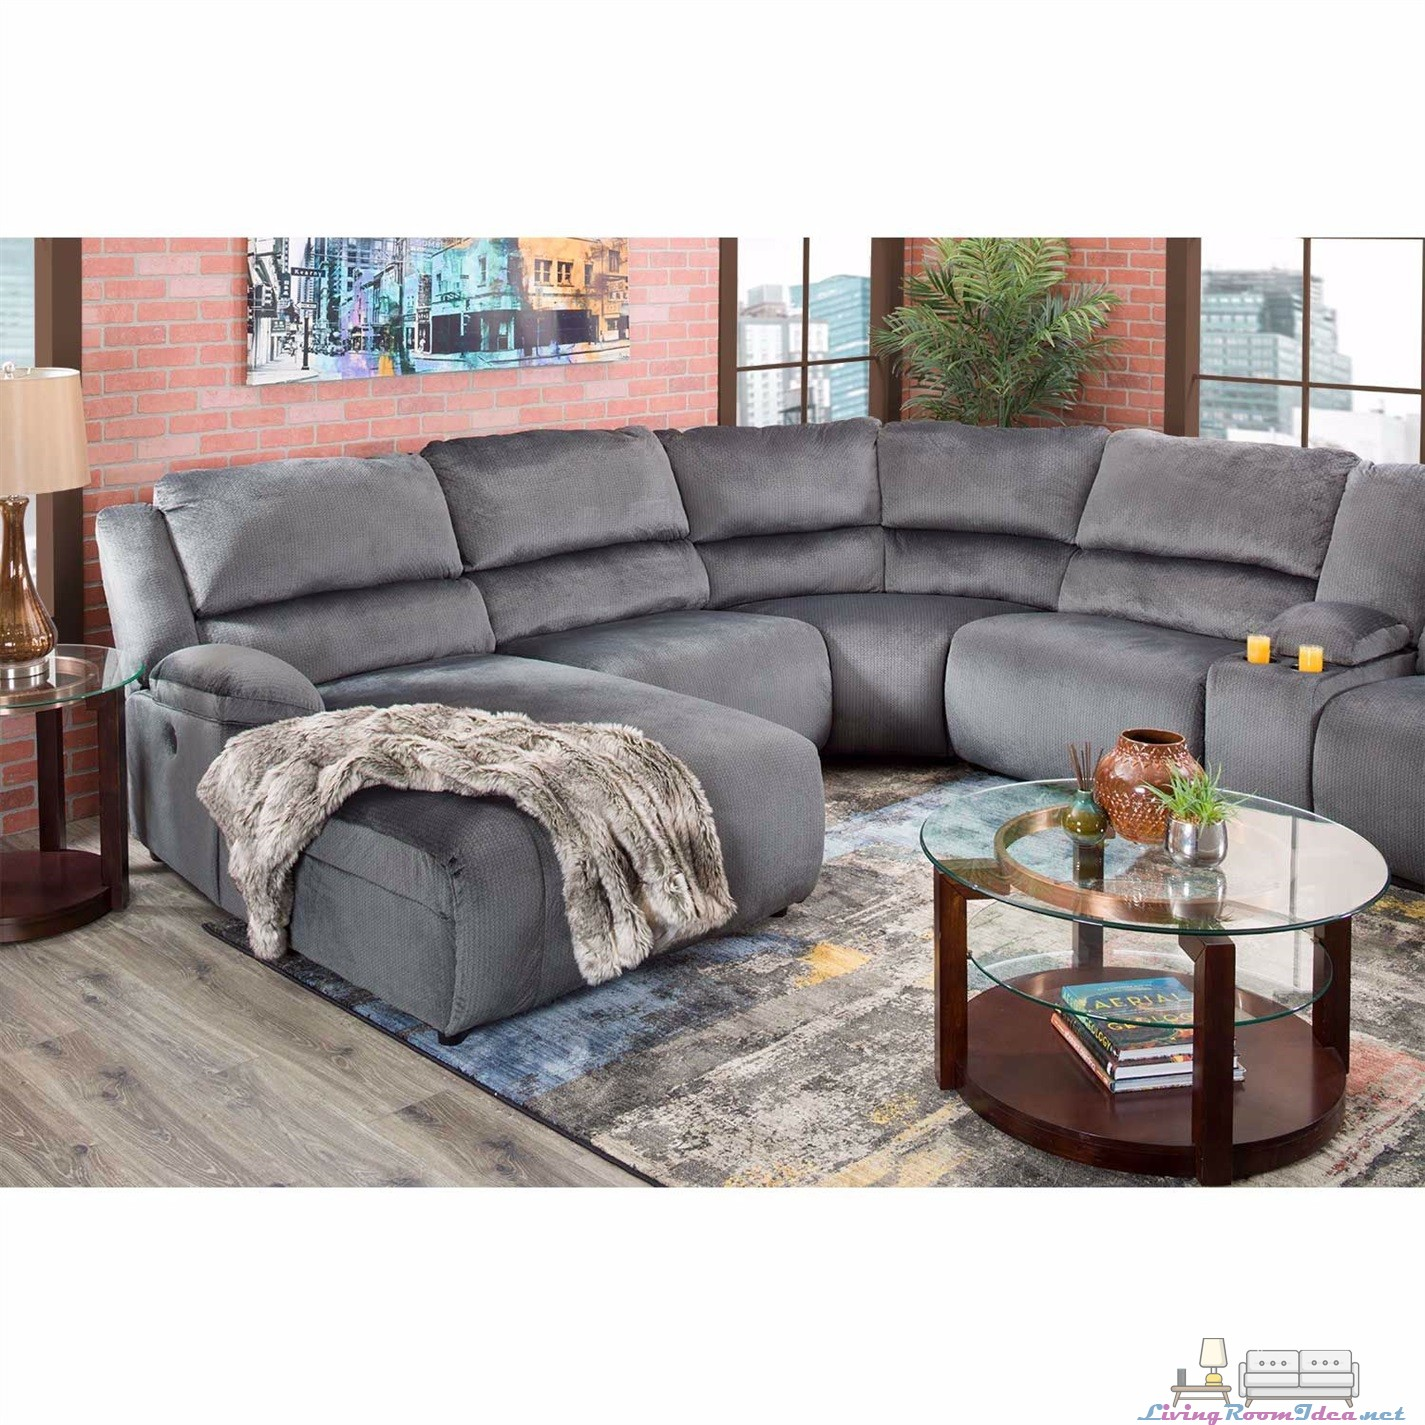 Clonmel 6 Pieces Sectional Living Room